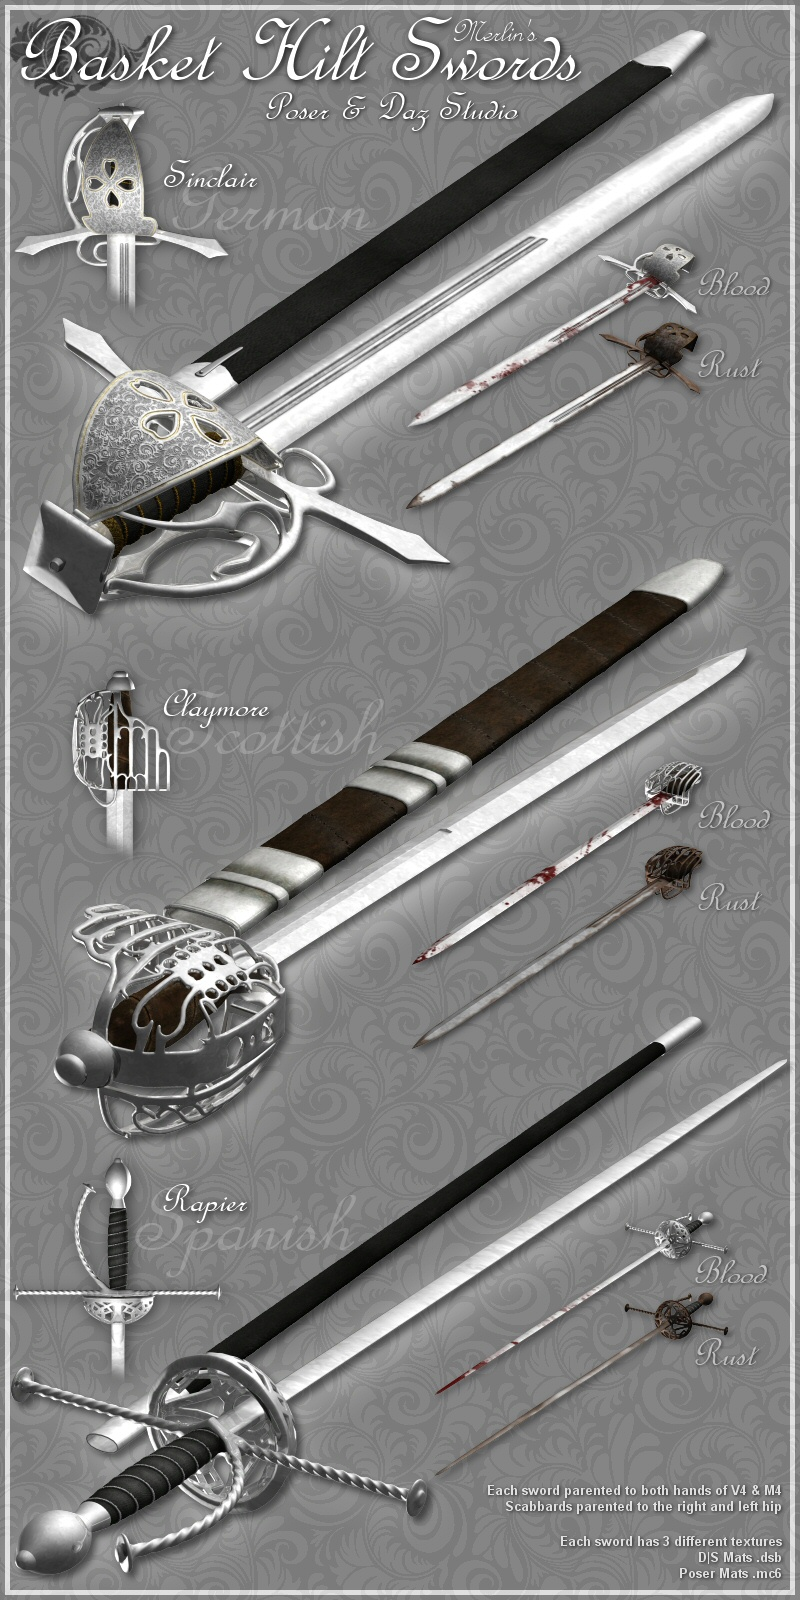 Merlins Basket-Hilt Swords